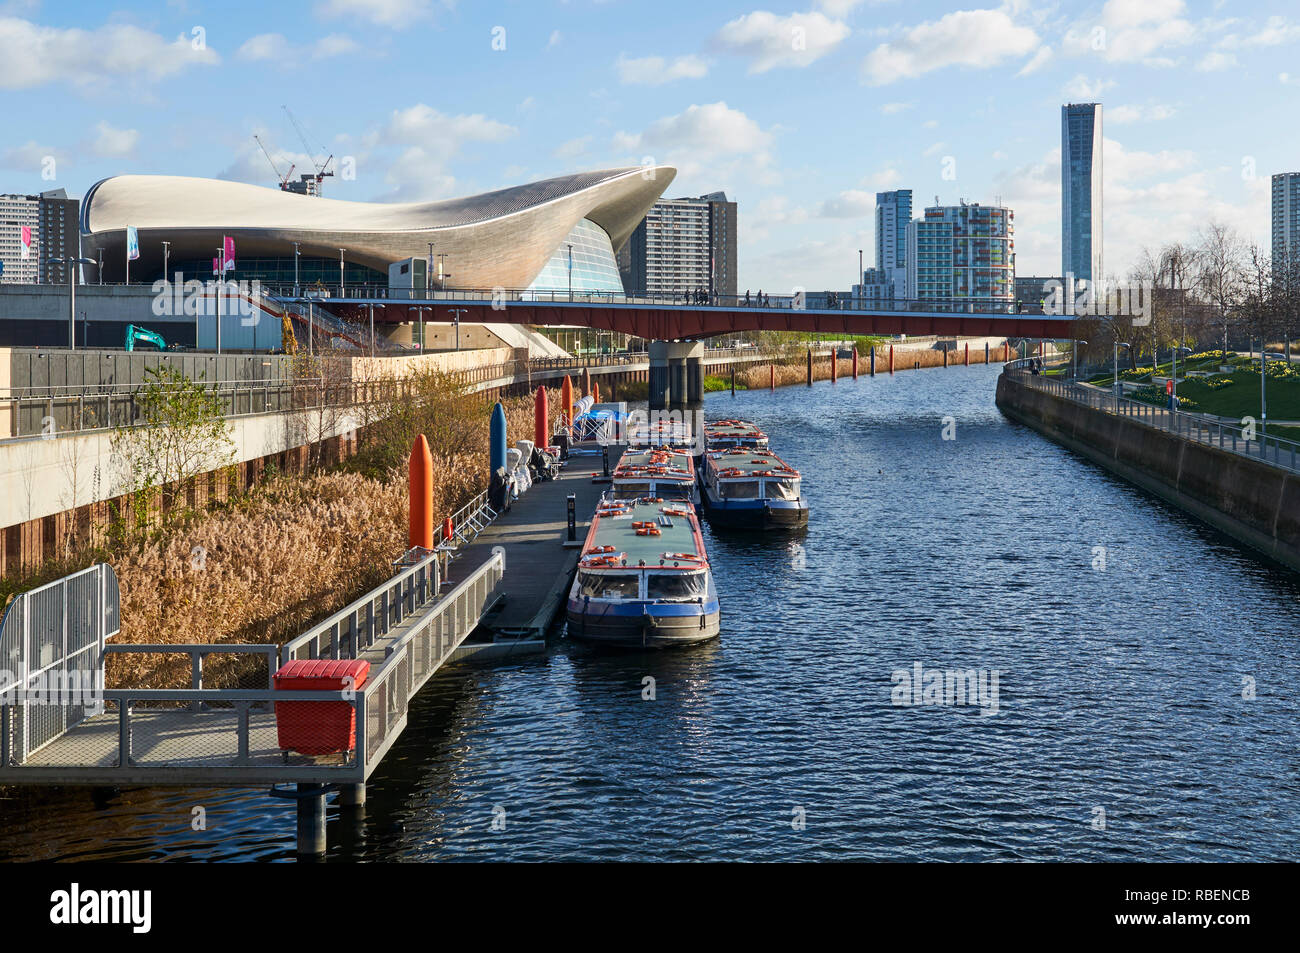 The Waterworks River and the London Aquatics Centre at Stratford, East London UK, with river boats - Stock Image